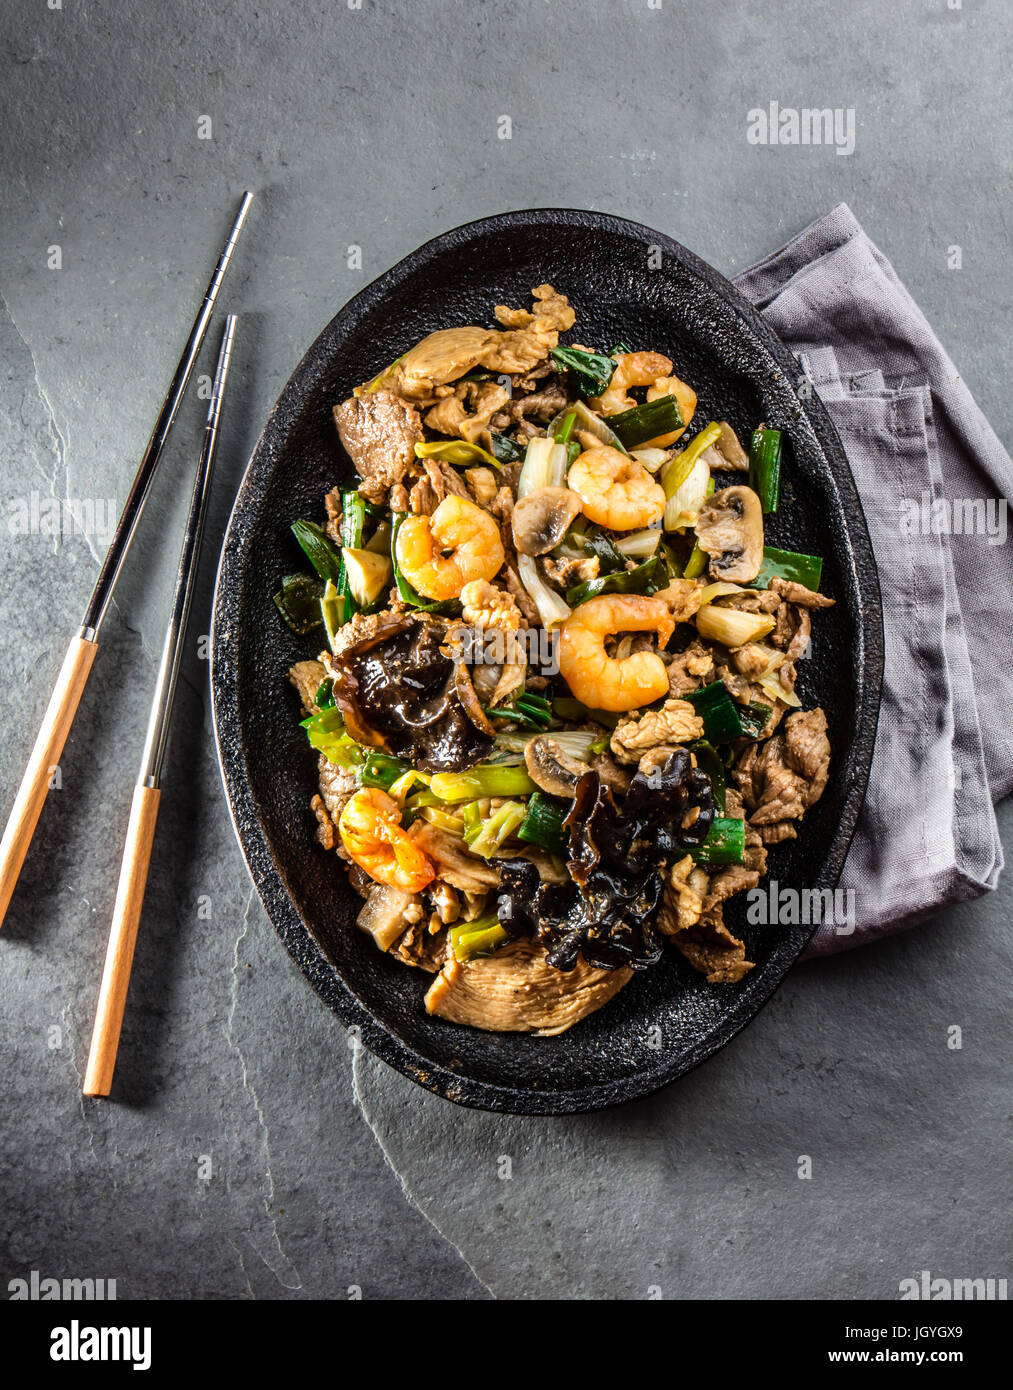 Chinese food. Te pam sao. Pan of fried beef, pork, chicken, shrimps, shiitake mushroom, champions and spring onion. - Stock Image